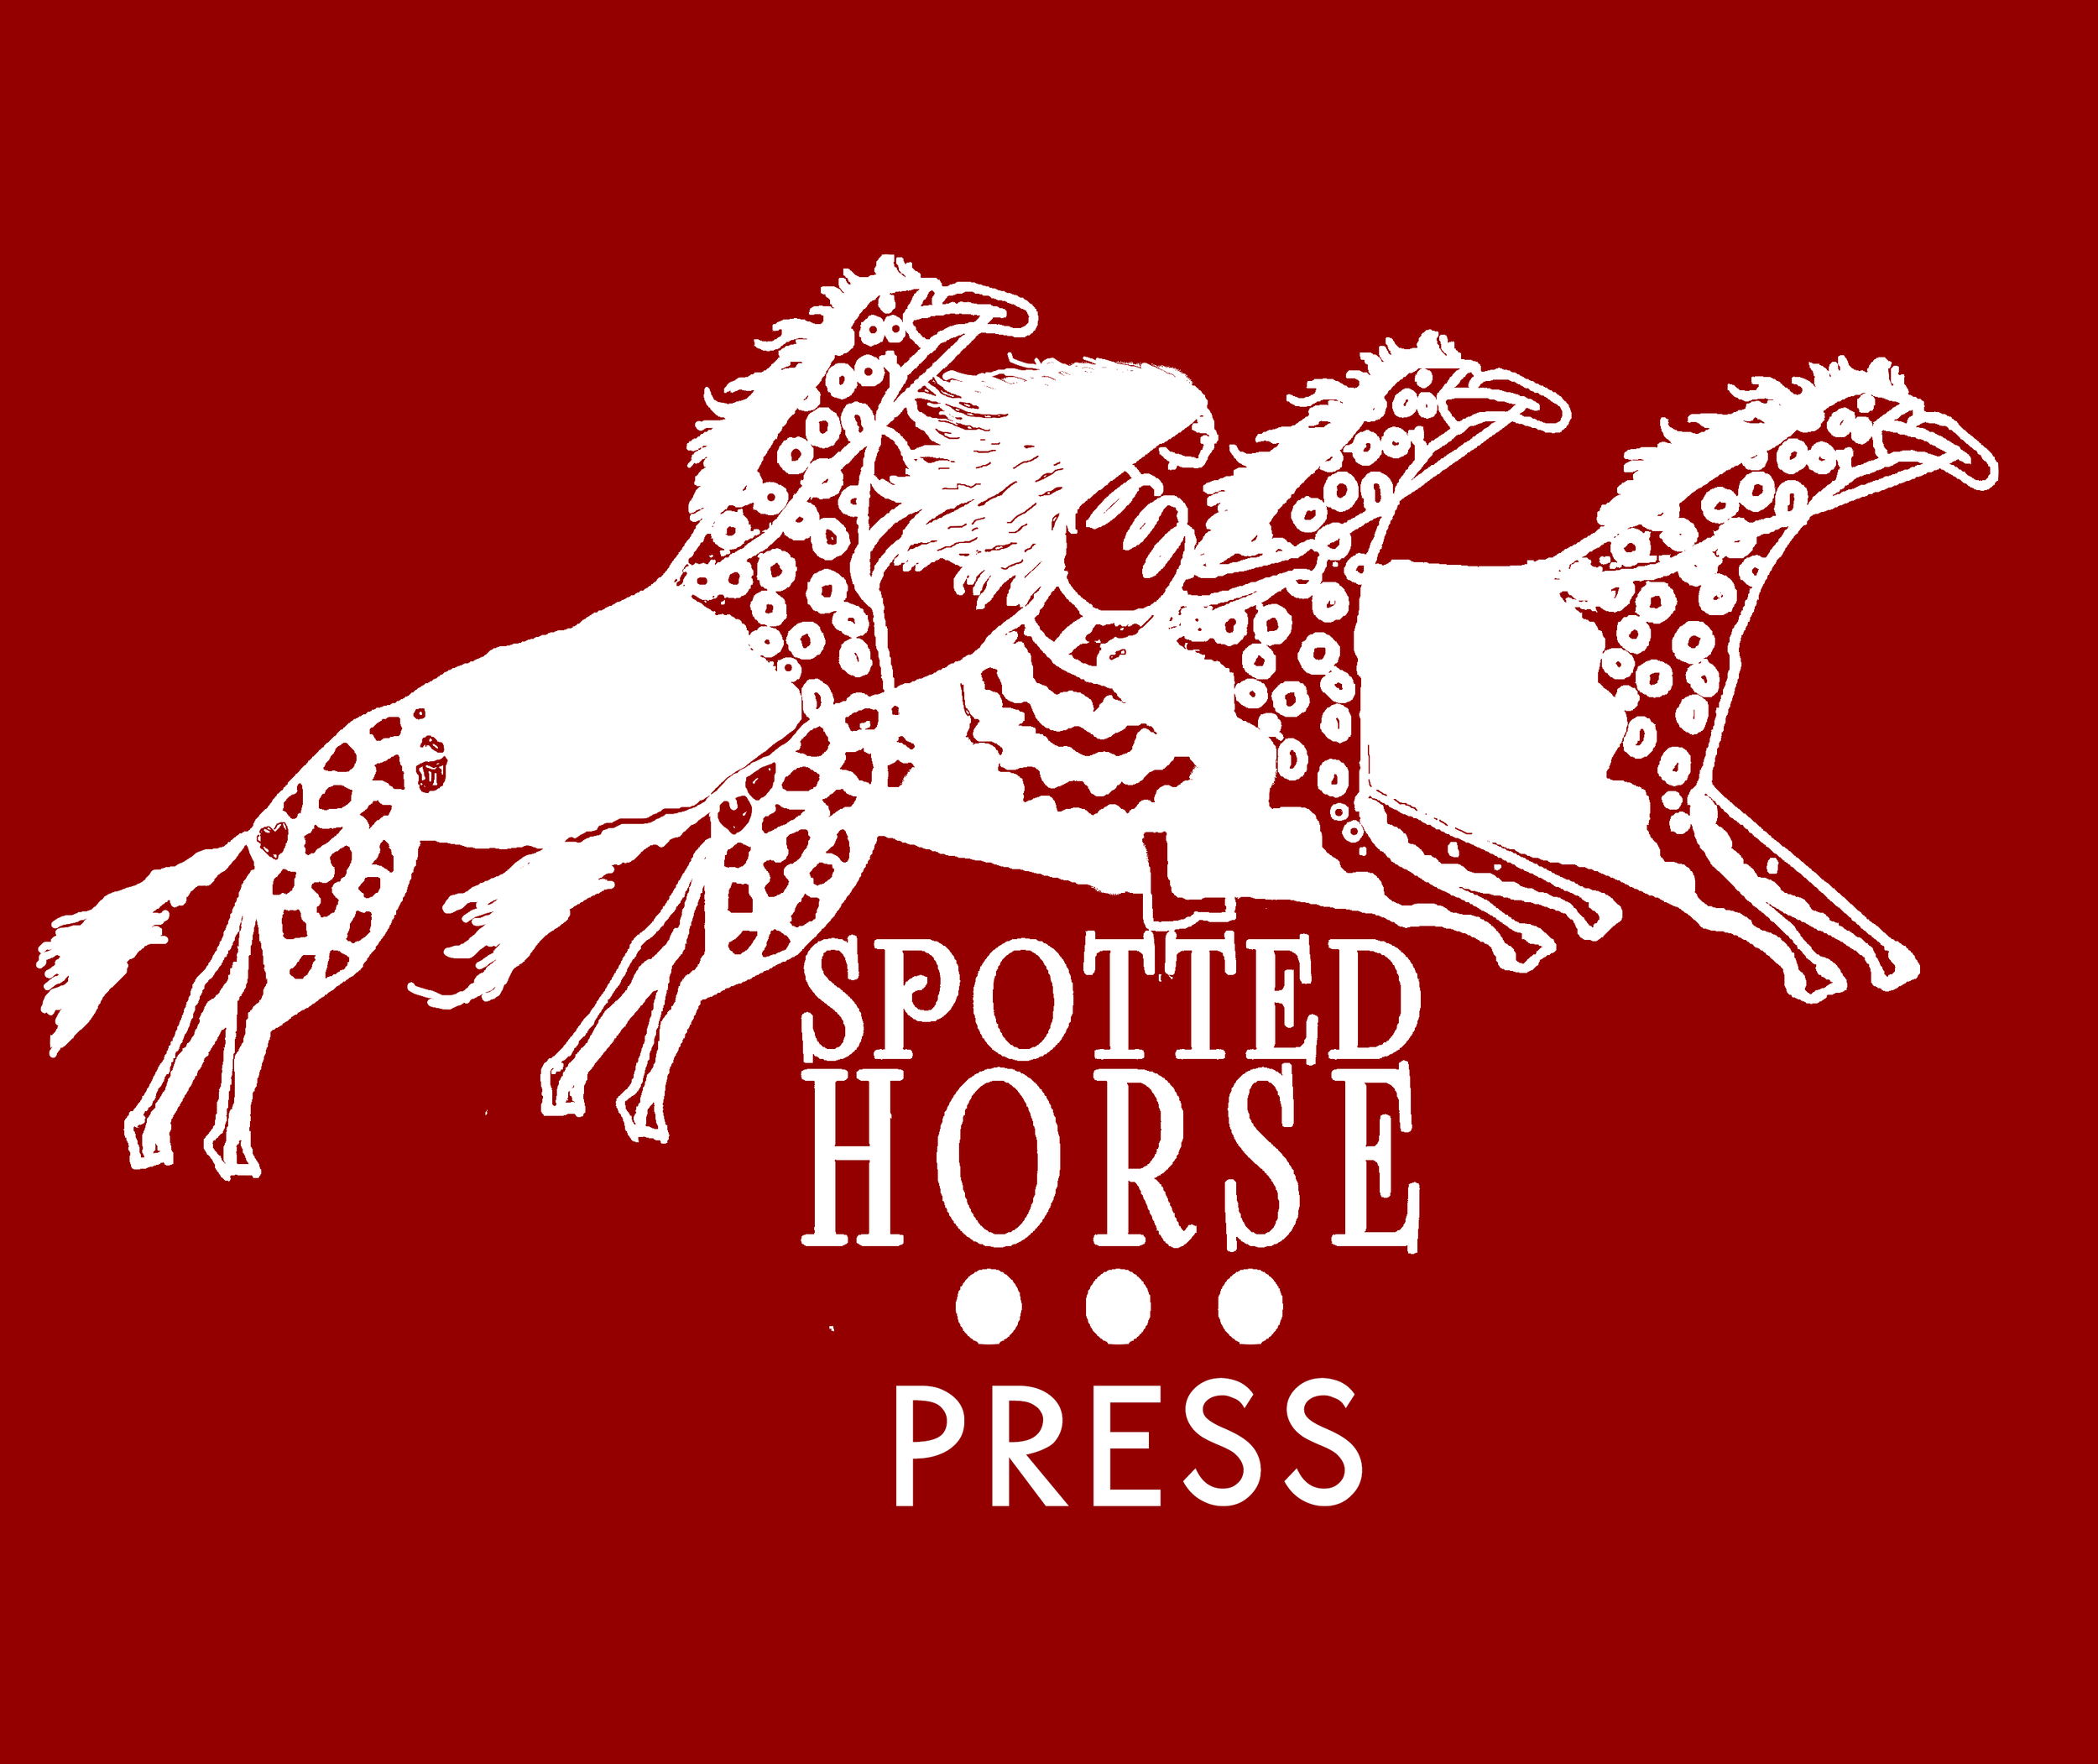 Spotted Horse Logo 2018 - PRESS.png